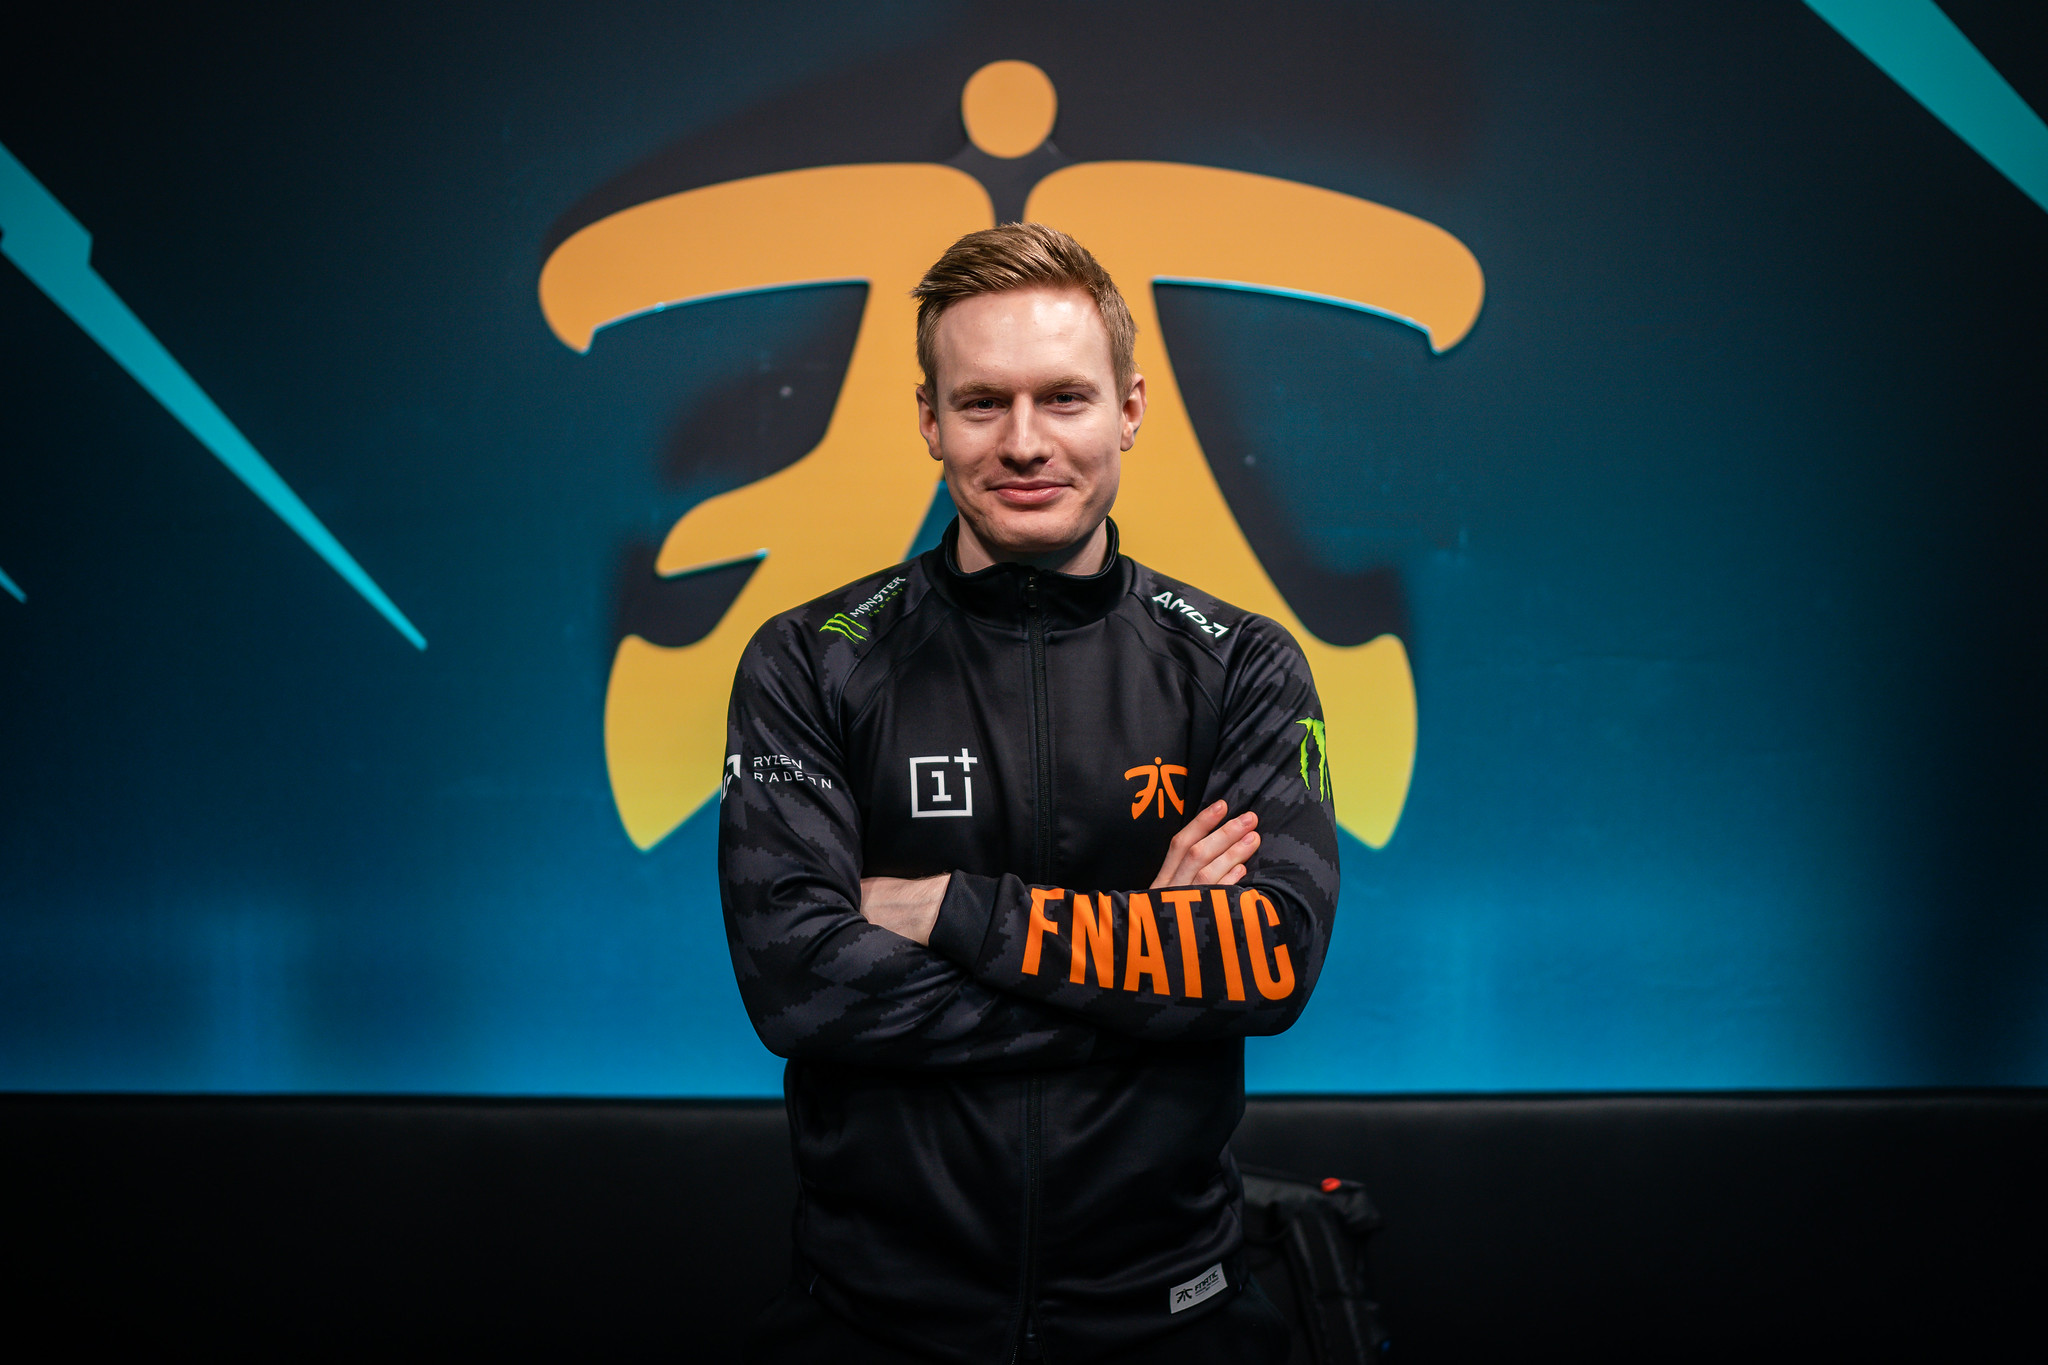 Fnatic takes down Splyce